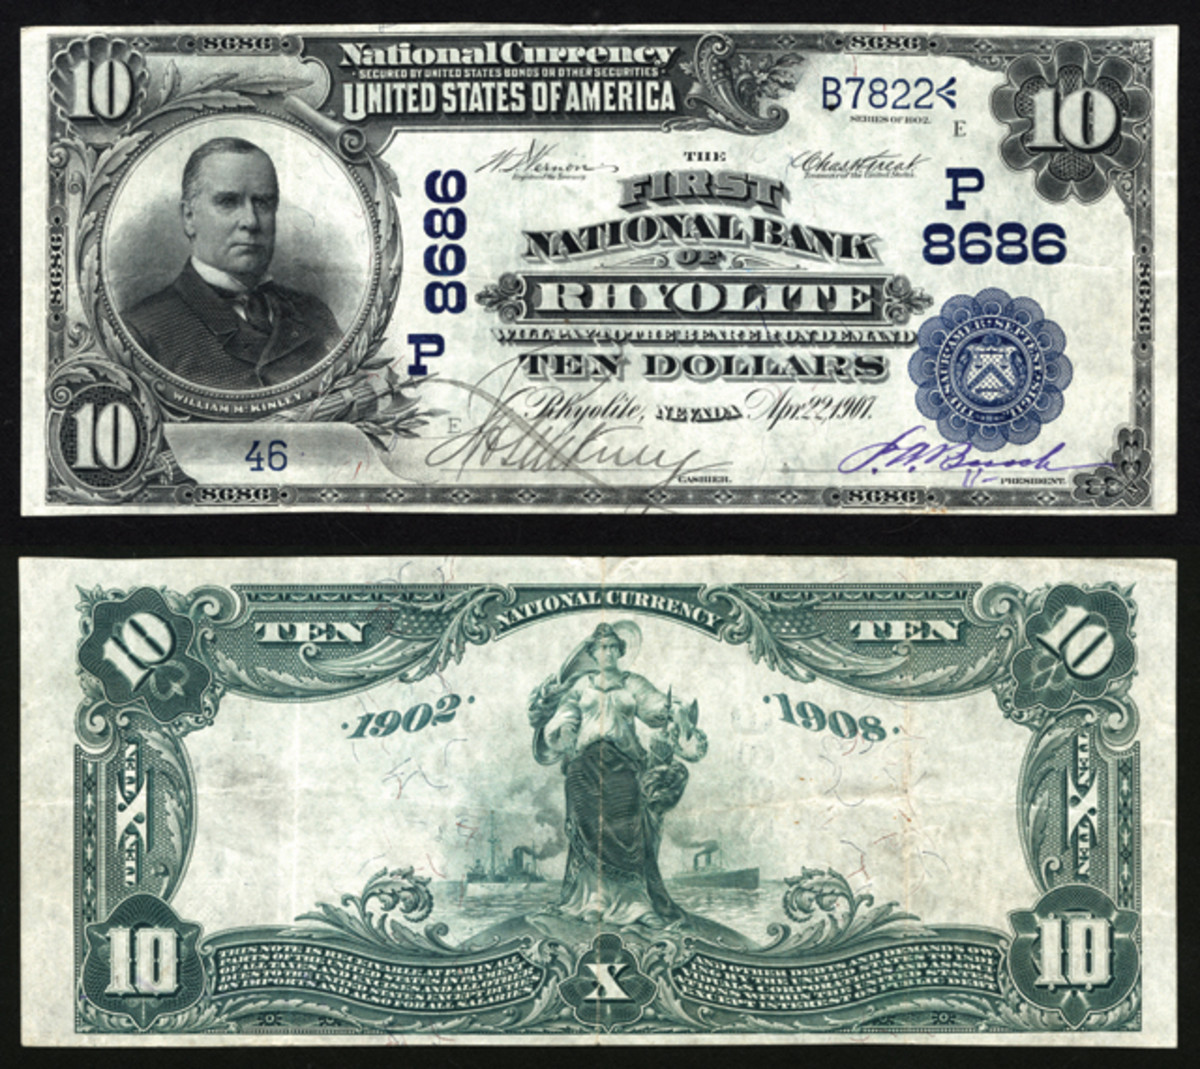 Until this note surfaced, no notes were known to exist on the First National Bank of Rhyolite, Nev. This exciting rarity will be featured in Lyn Knight Currency Auctions' PCDA sale this November.